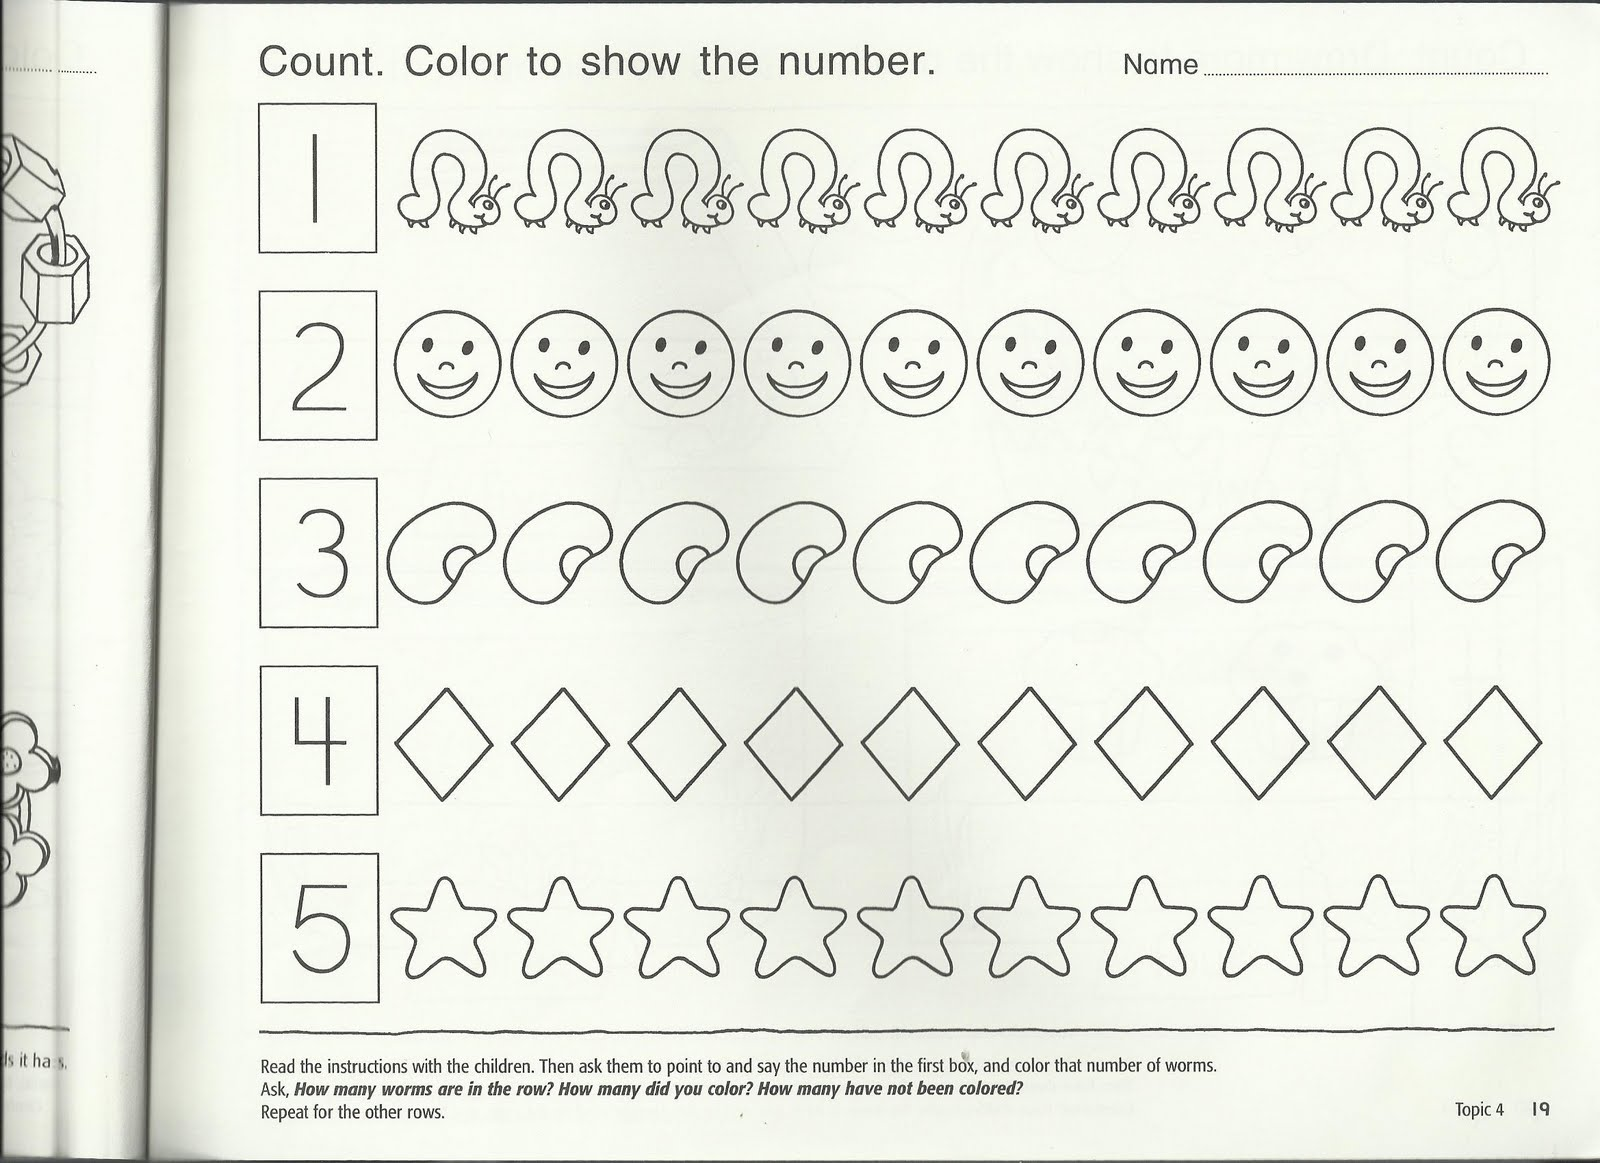 Mathematical Explorations in Early Childhood: September 2011